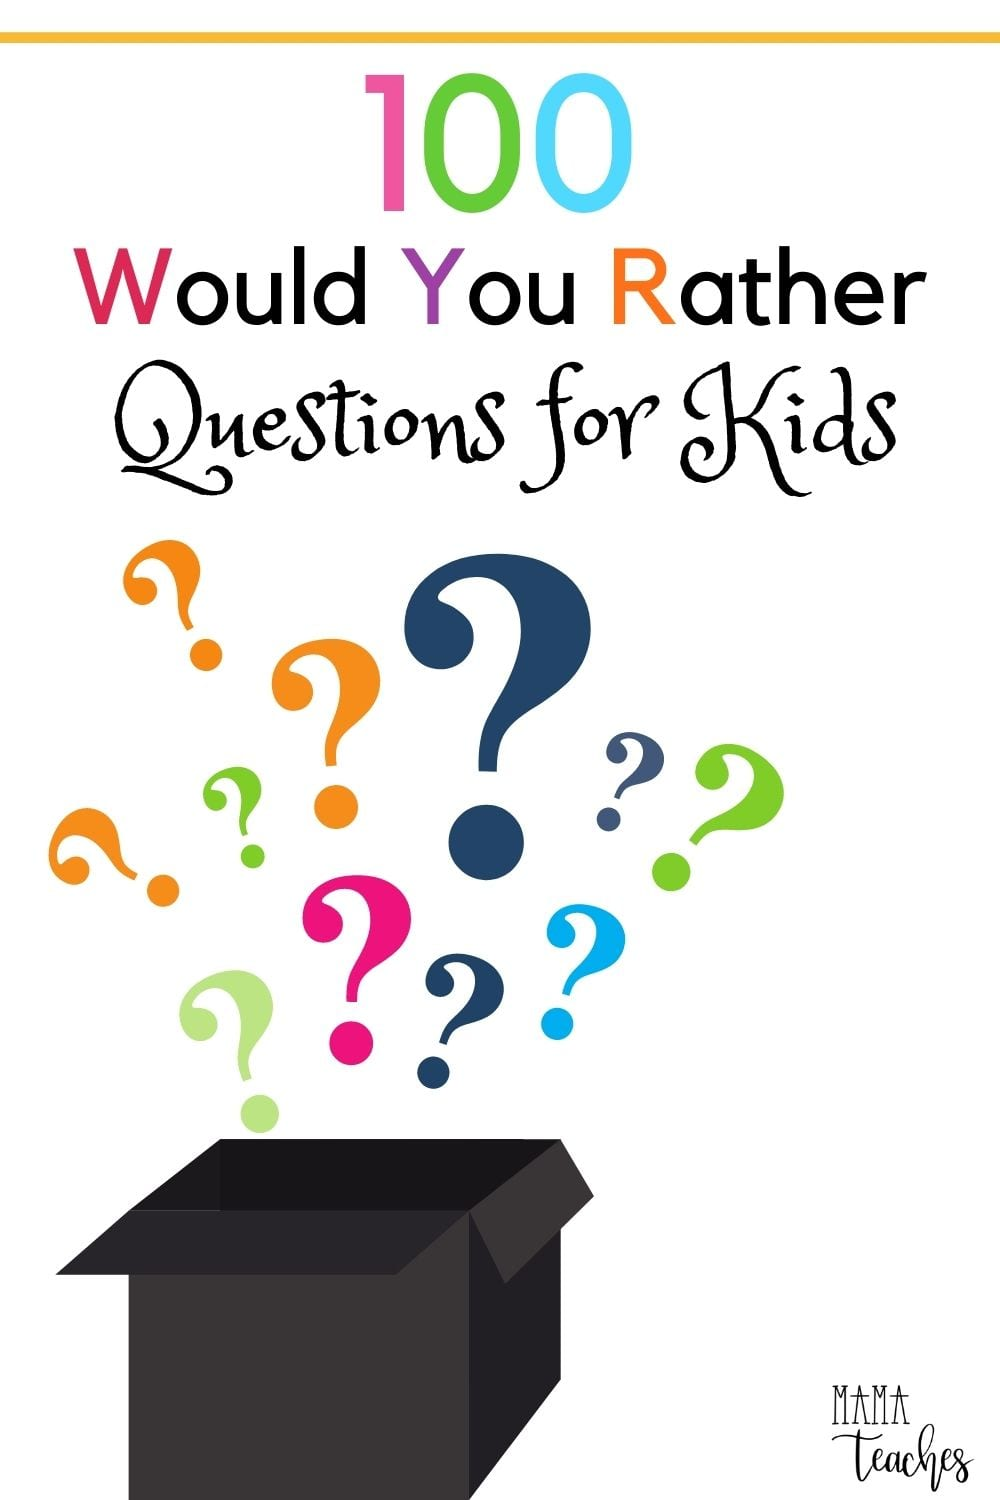 100 Would You Rather Questions for Kids